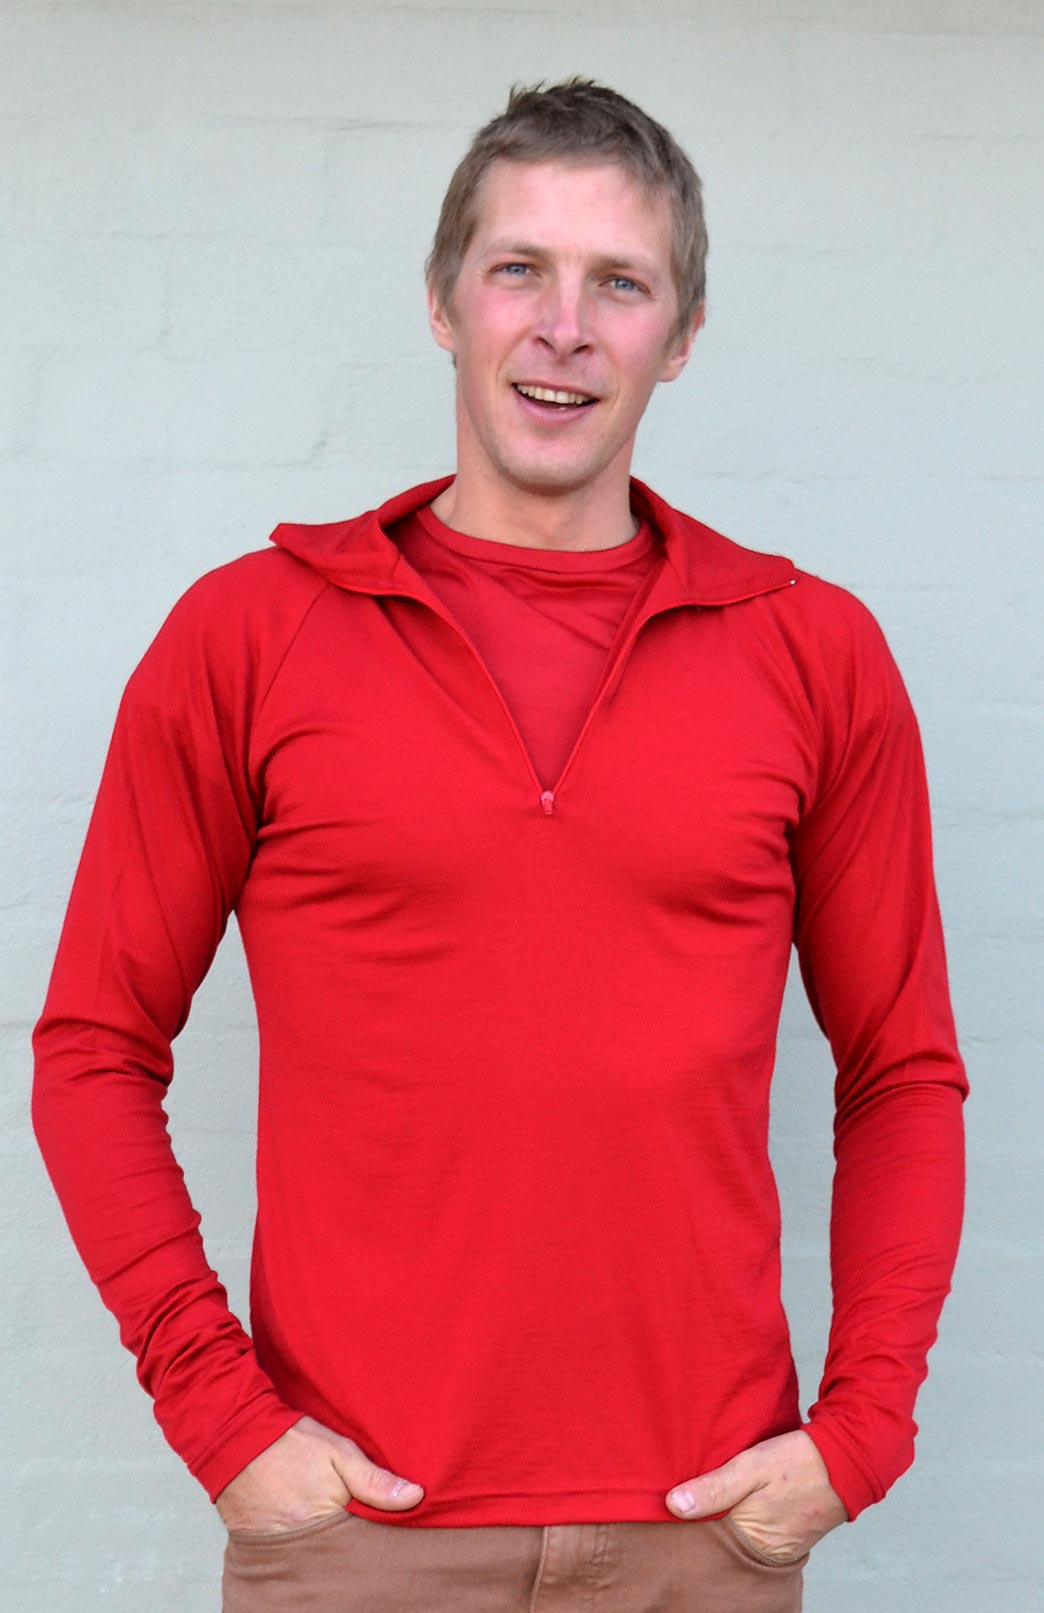 Zip Neck Top - Mid-weight (~200g) - Men's Flame Red Mid-weight Merino Wool Thermal Top with Zip Neck and Thumb Holes for Kayaking and Bush Walking - Smitten Merino Tasmania Australia